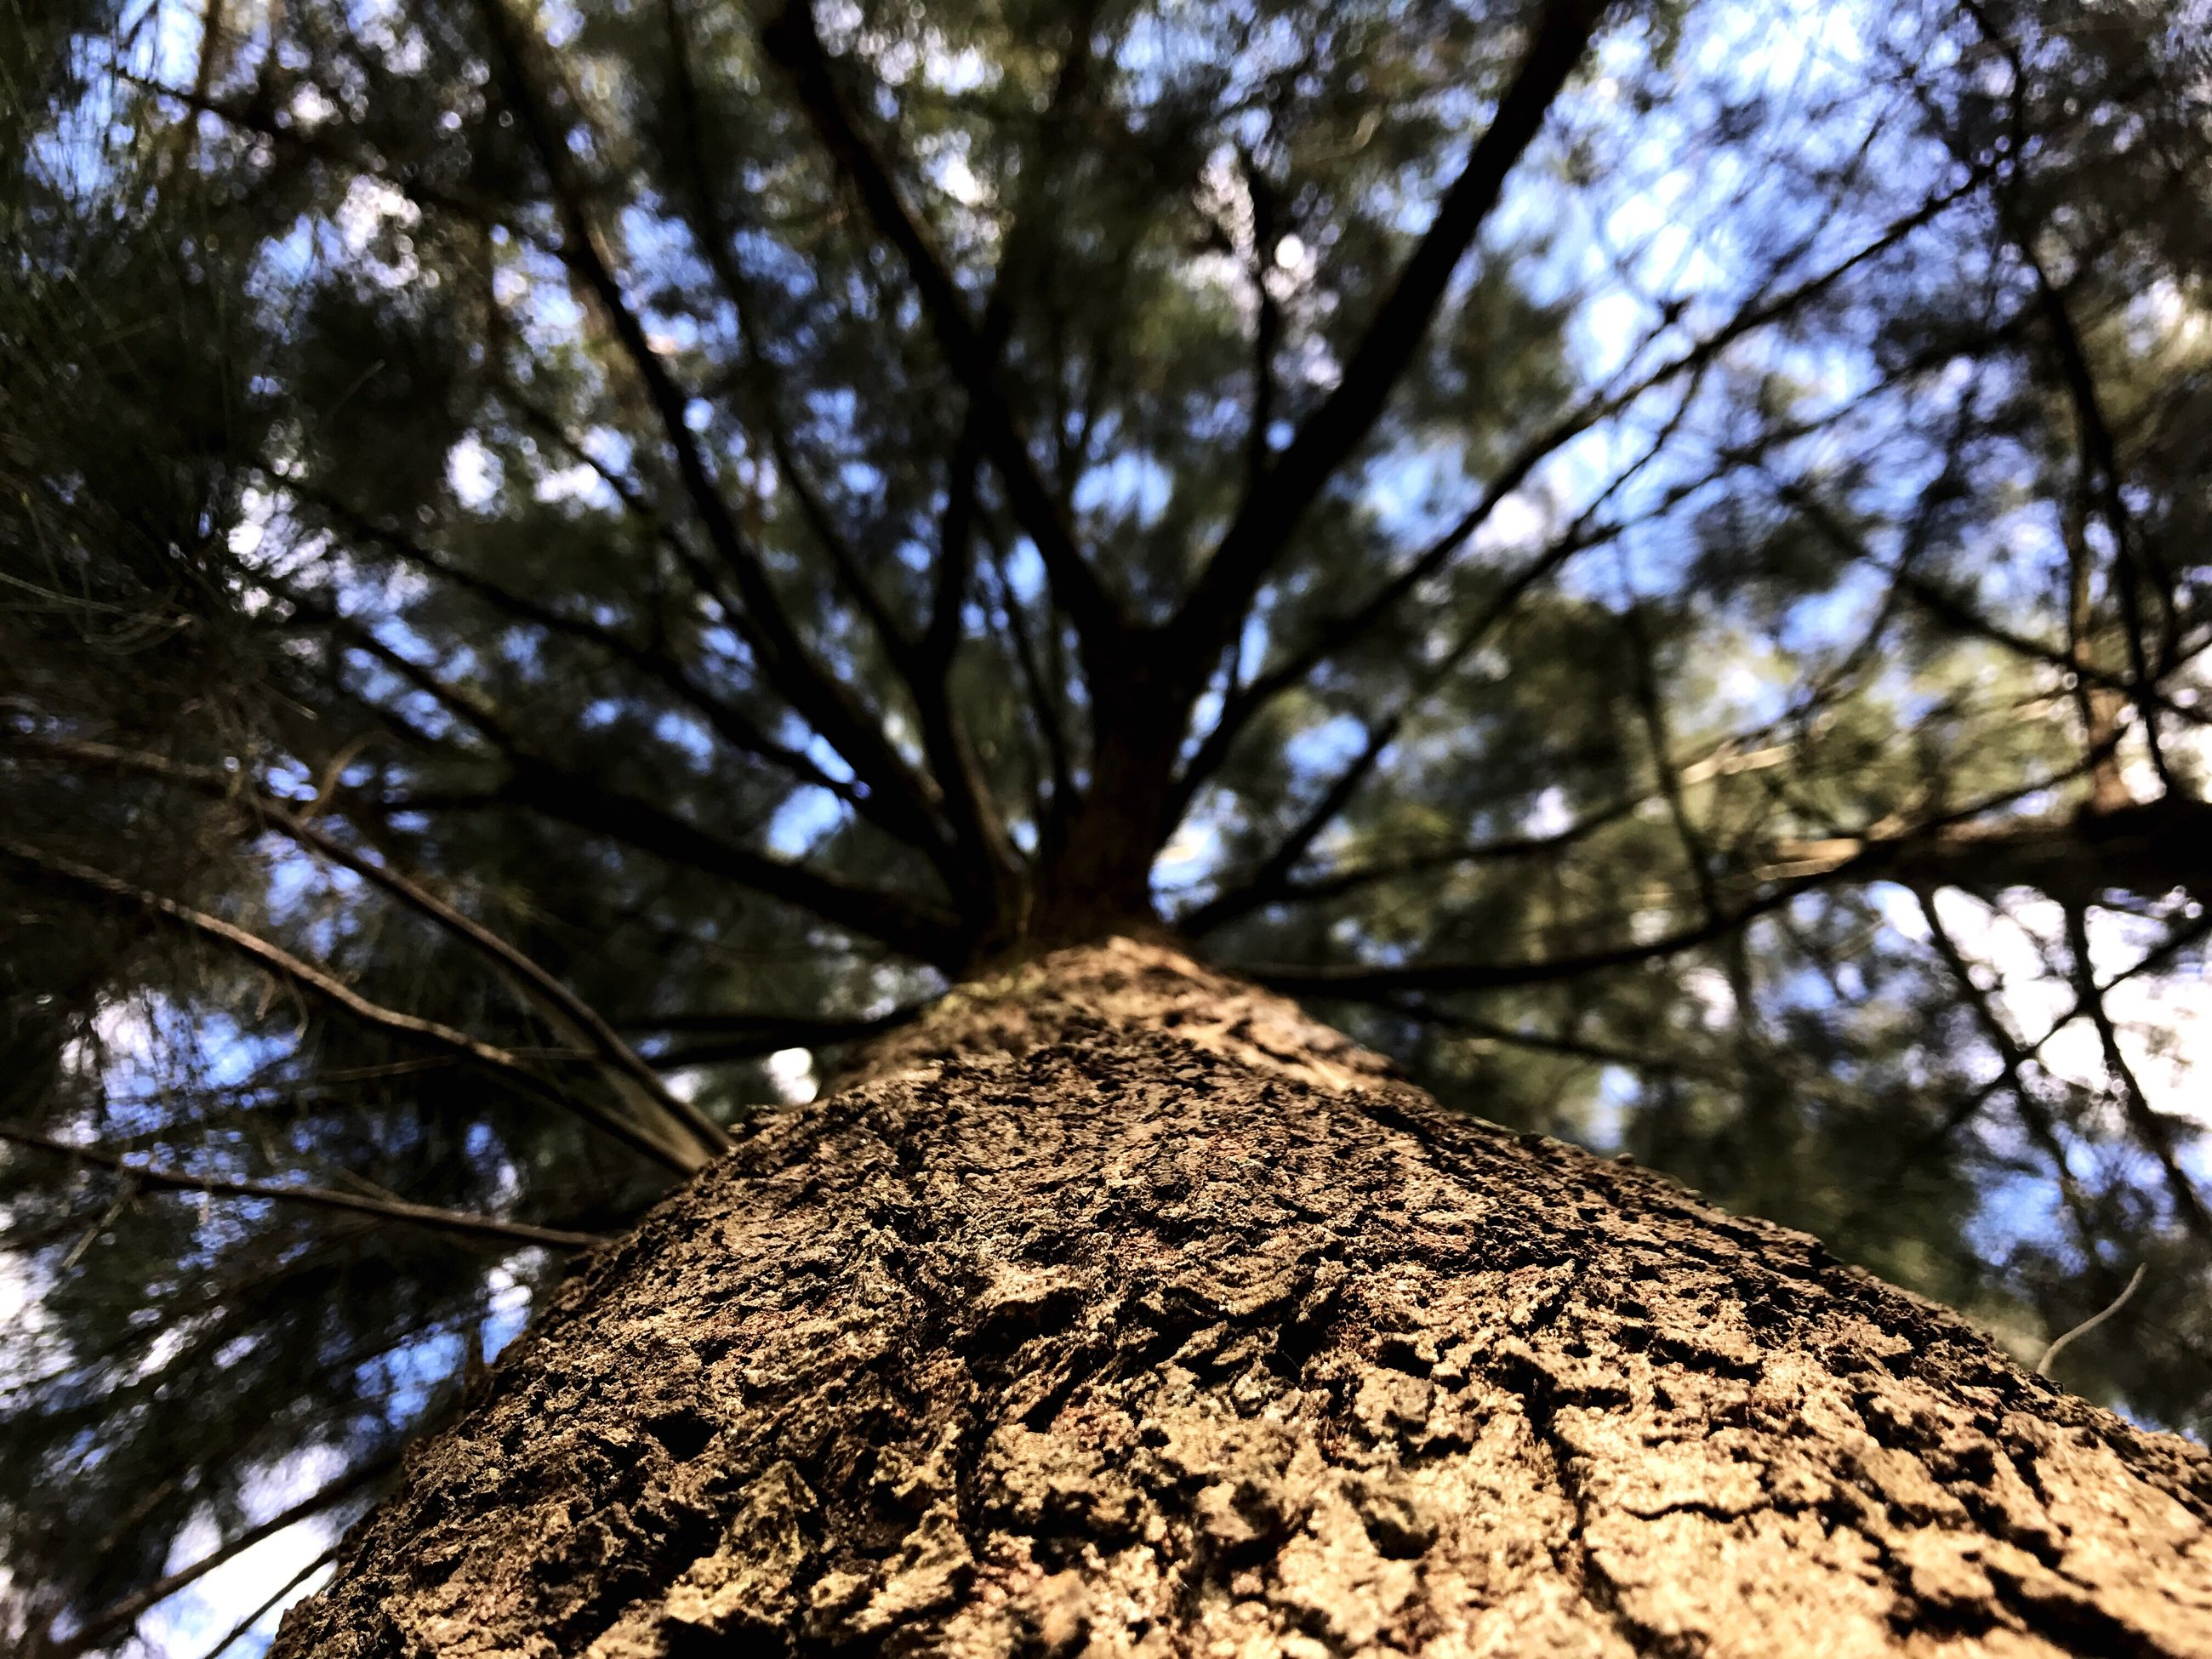 tree, low angle view, tree trunk, growth, day, outdoors, branch, nature, textured, no people, bark, beauty in nature, sky, close-up